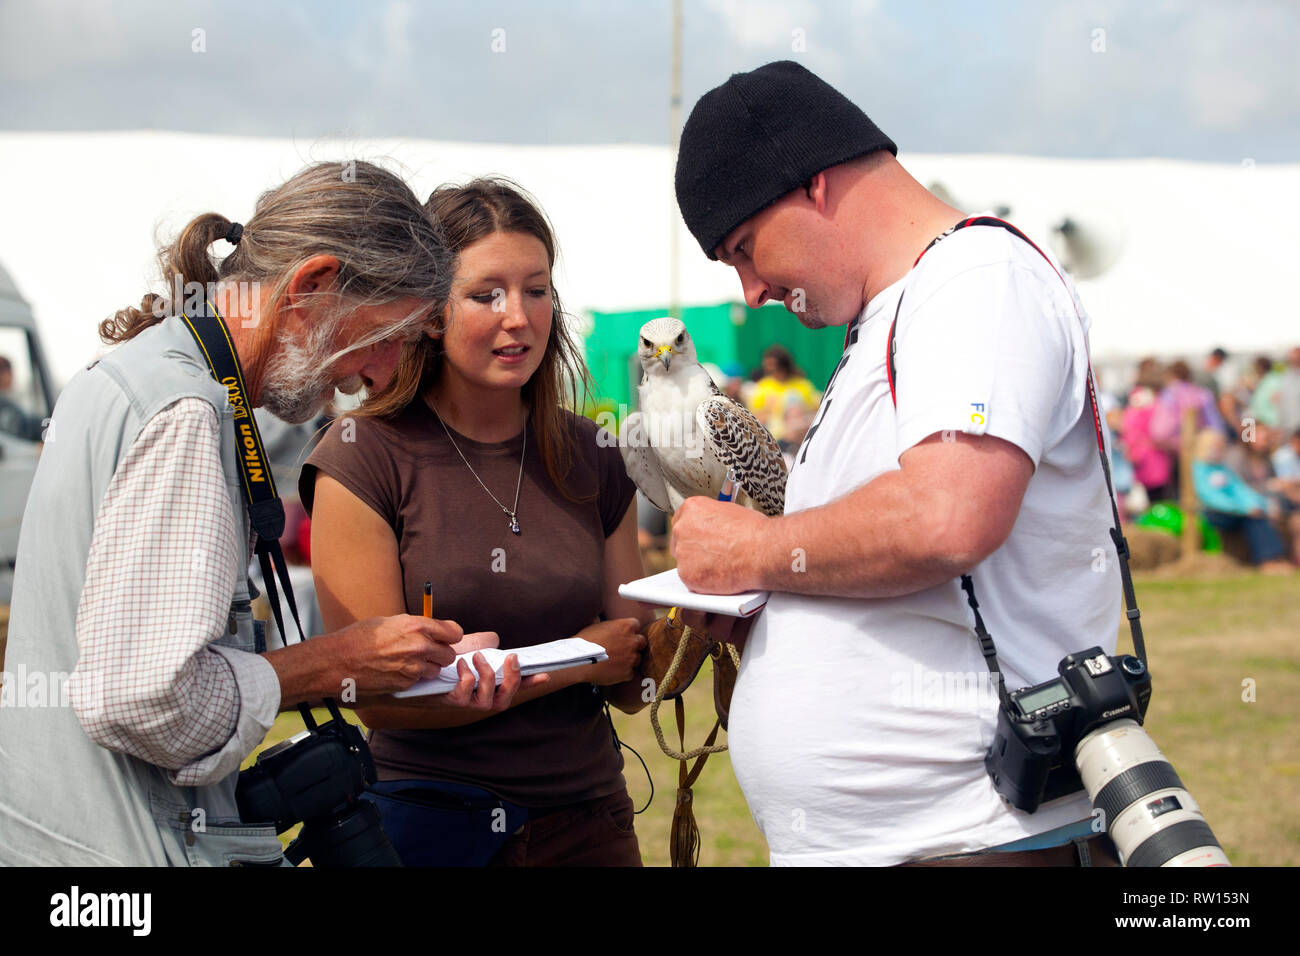 Local newspaper Photographers at local agricultural, show, captioning, writing, interview, notes, story, falconer, falcon, Chale, Isle of Wight - Stock Image